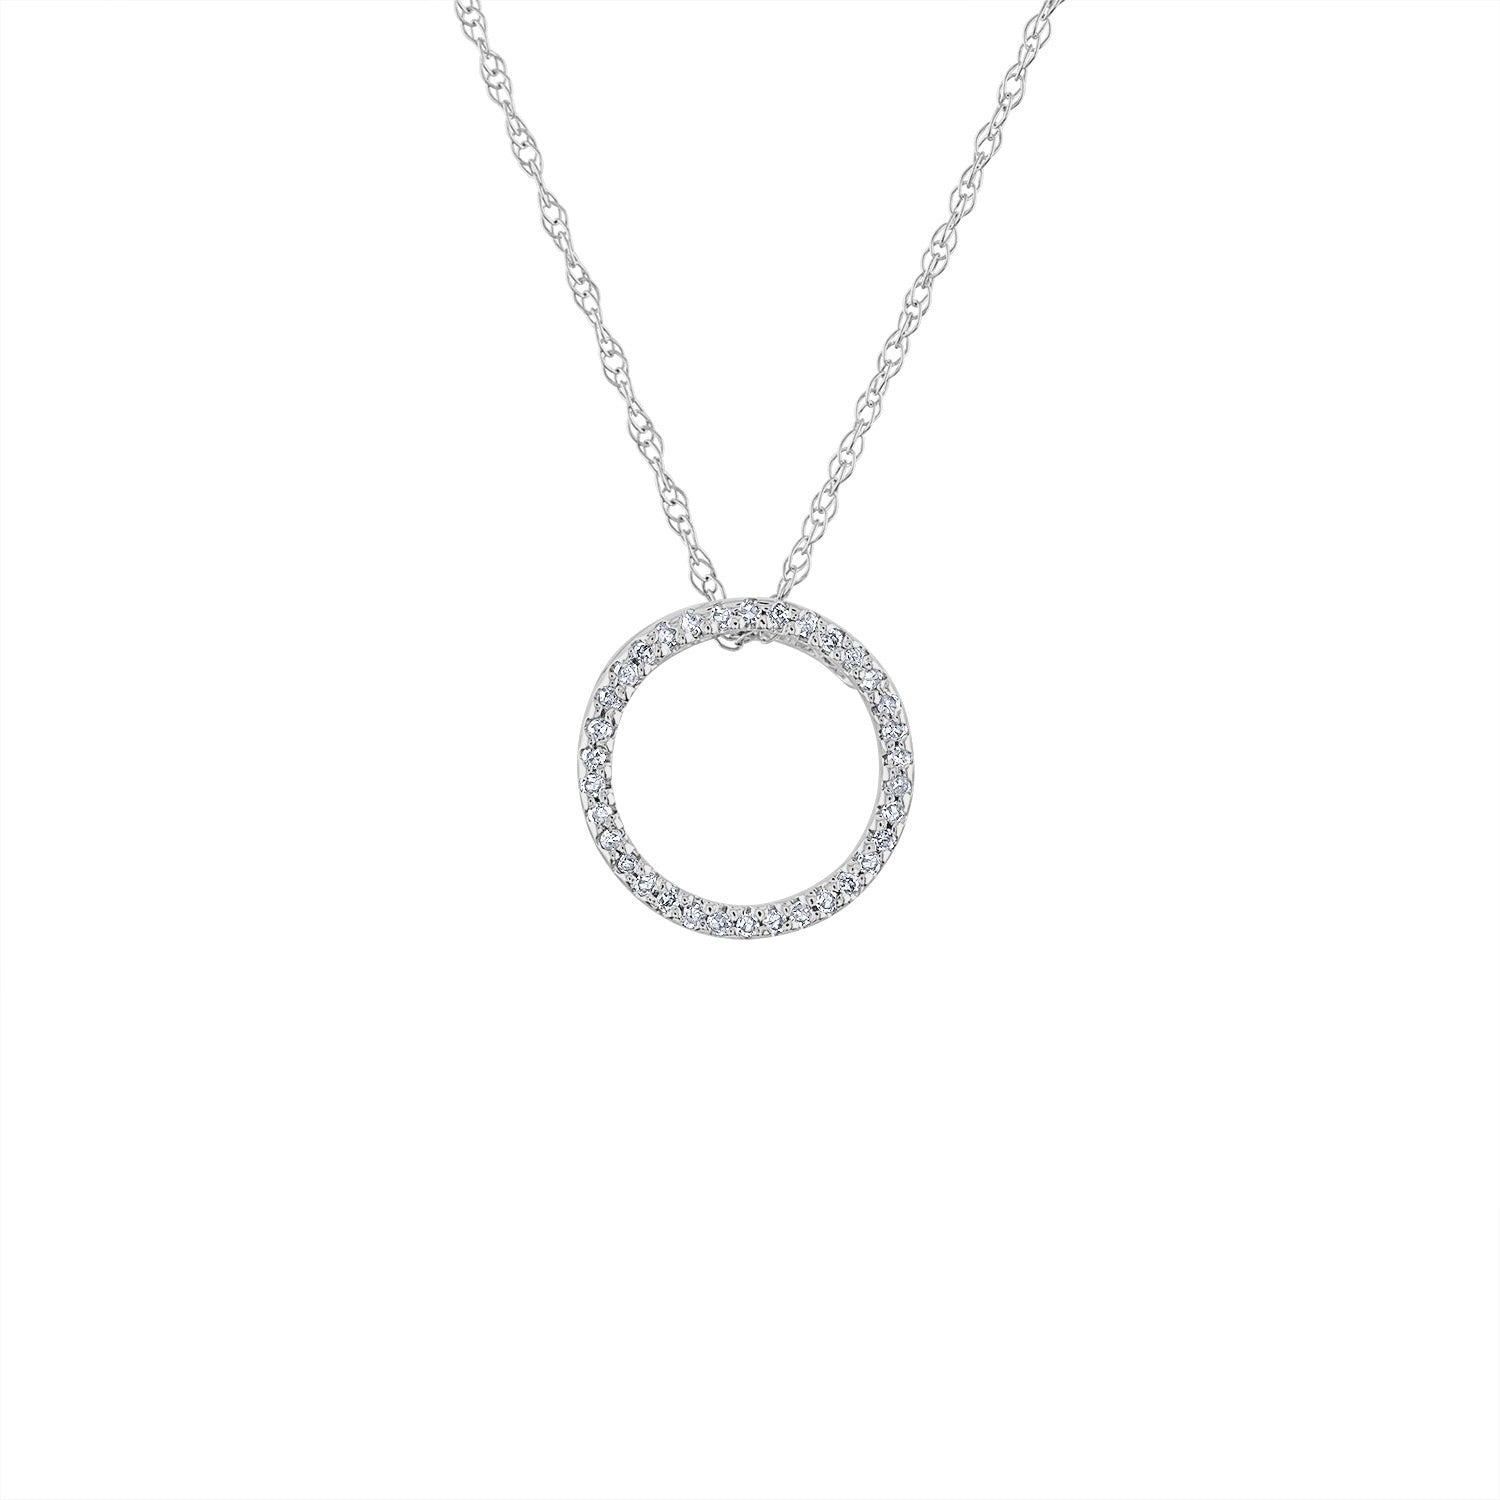 14KT GOLD SMALL DIAMOND OPEN CIRCLE NECKLACE